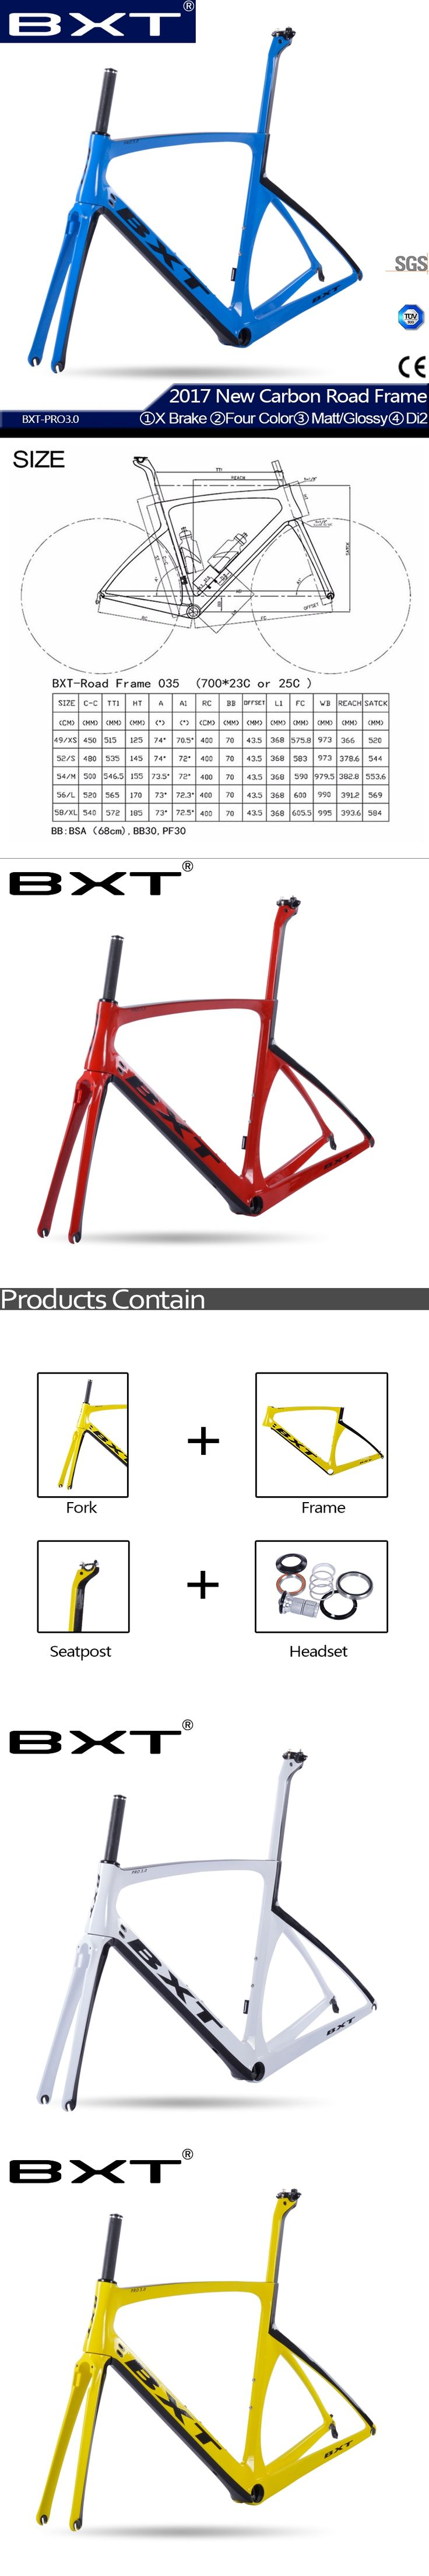 T800 carbon road frame 2017 BXT New bicycle carbon road bike frame 49/52/54/56 bicycles cheap carbon frame road bike Free shippi